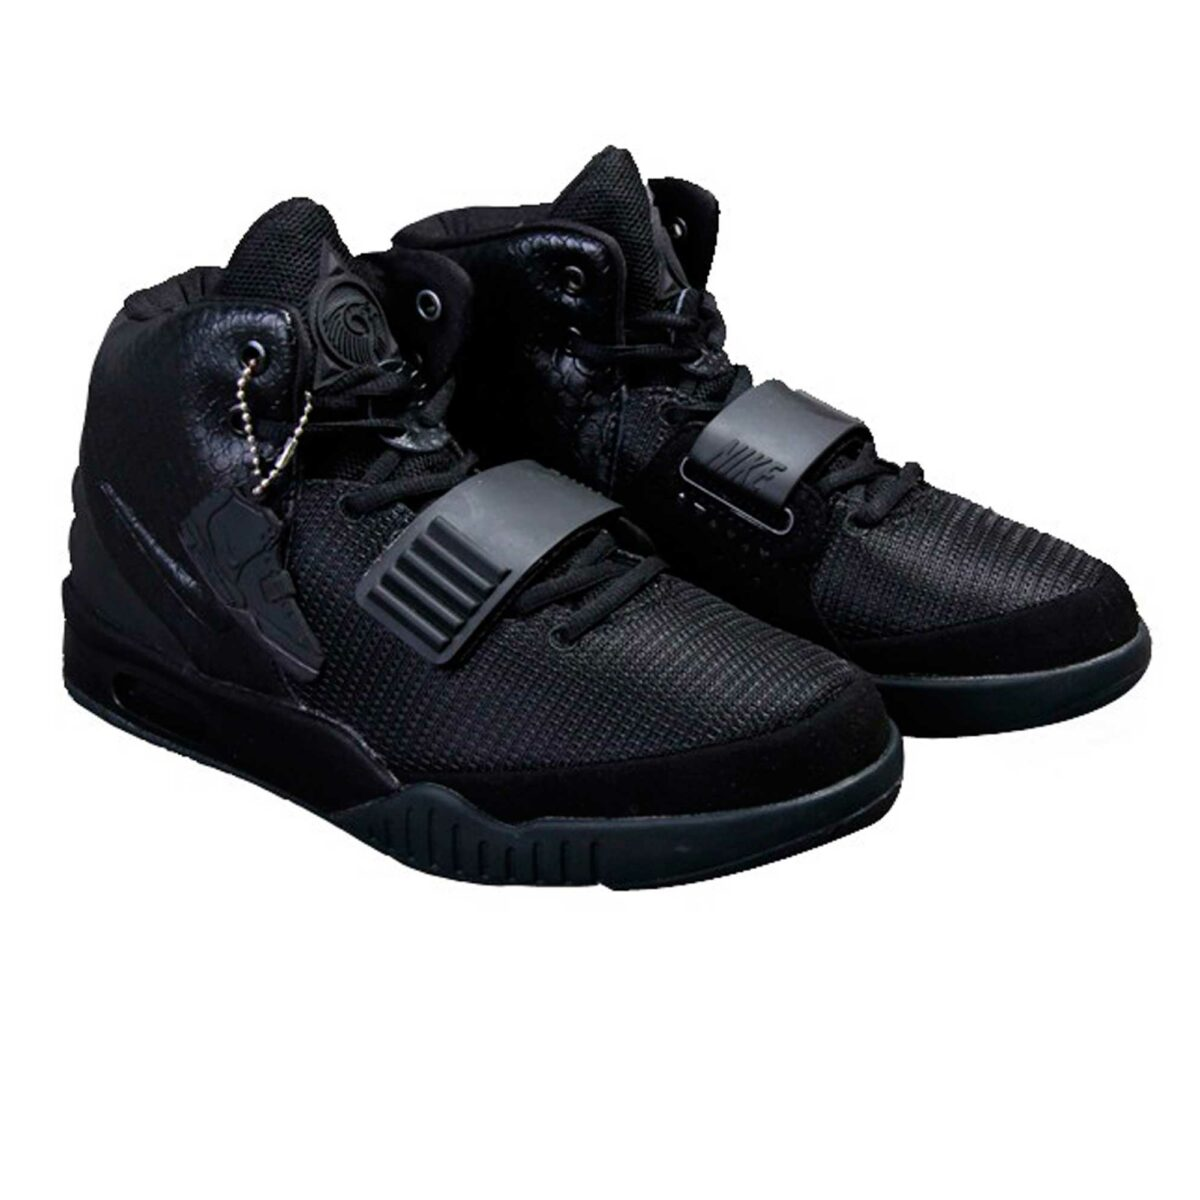 nike air yeezy 2 nrg all black 508214_025 купить